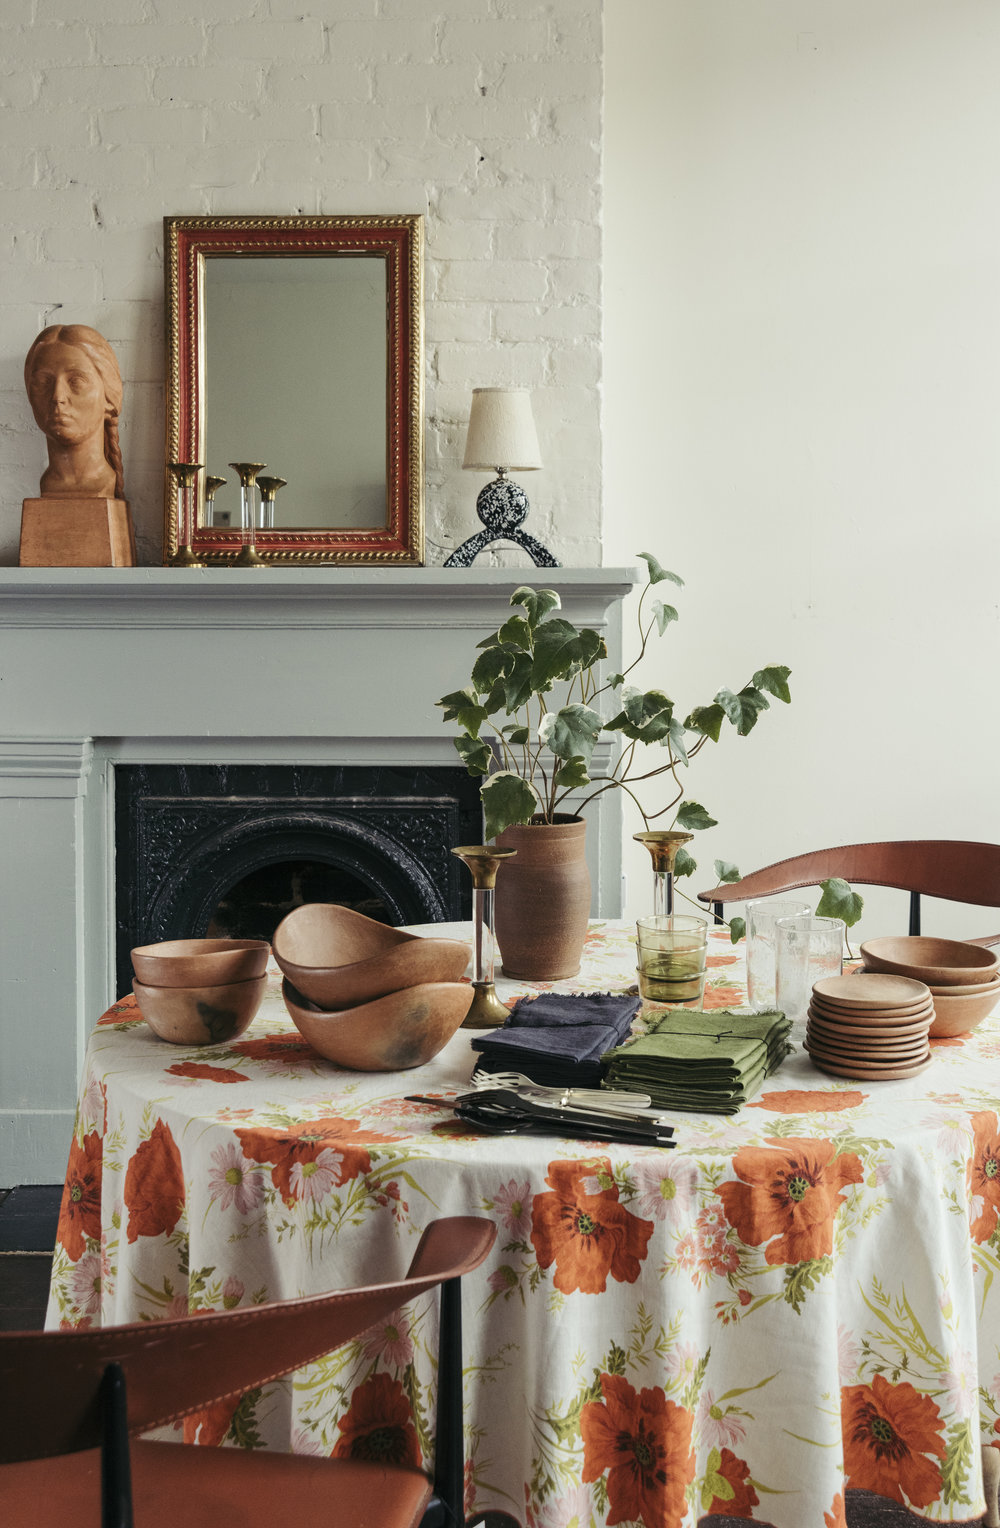 styled_roundtop_sunday_shop_vignette_HIGH_RES-11.jpg